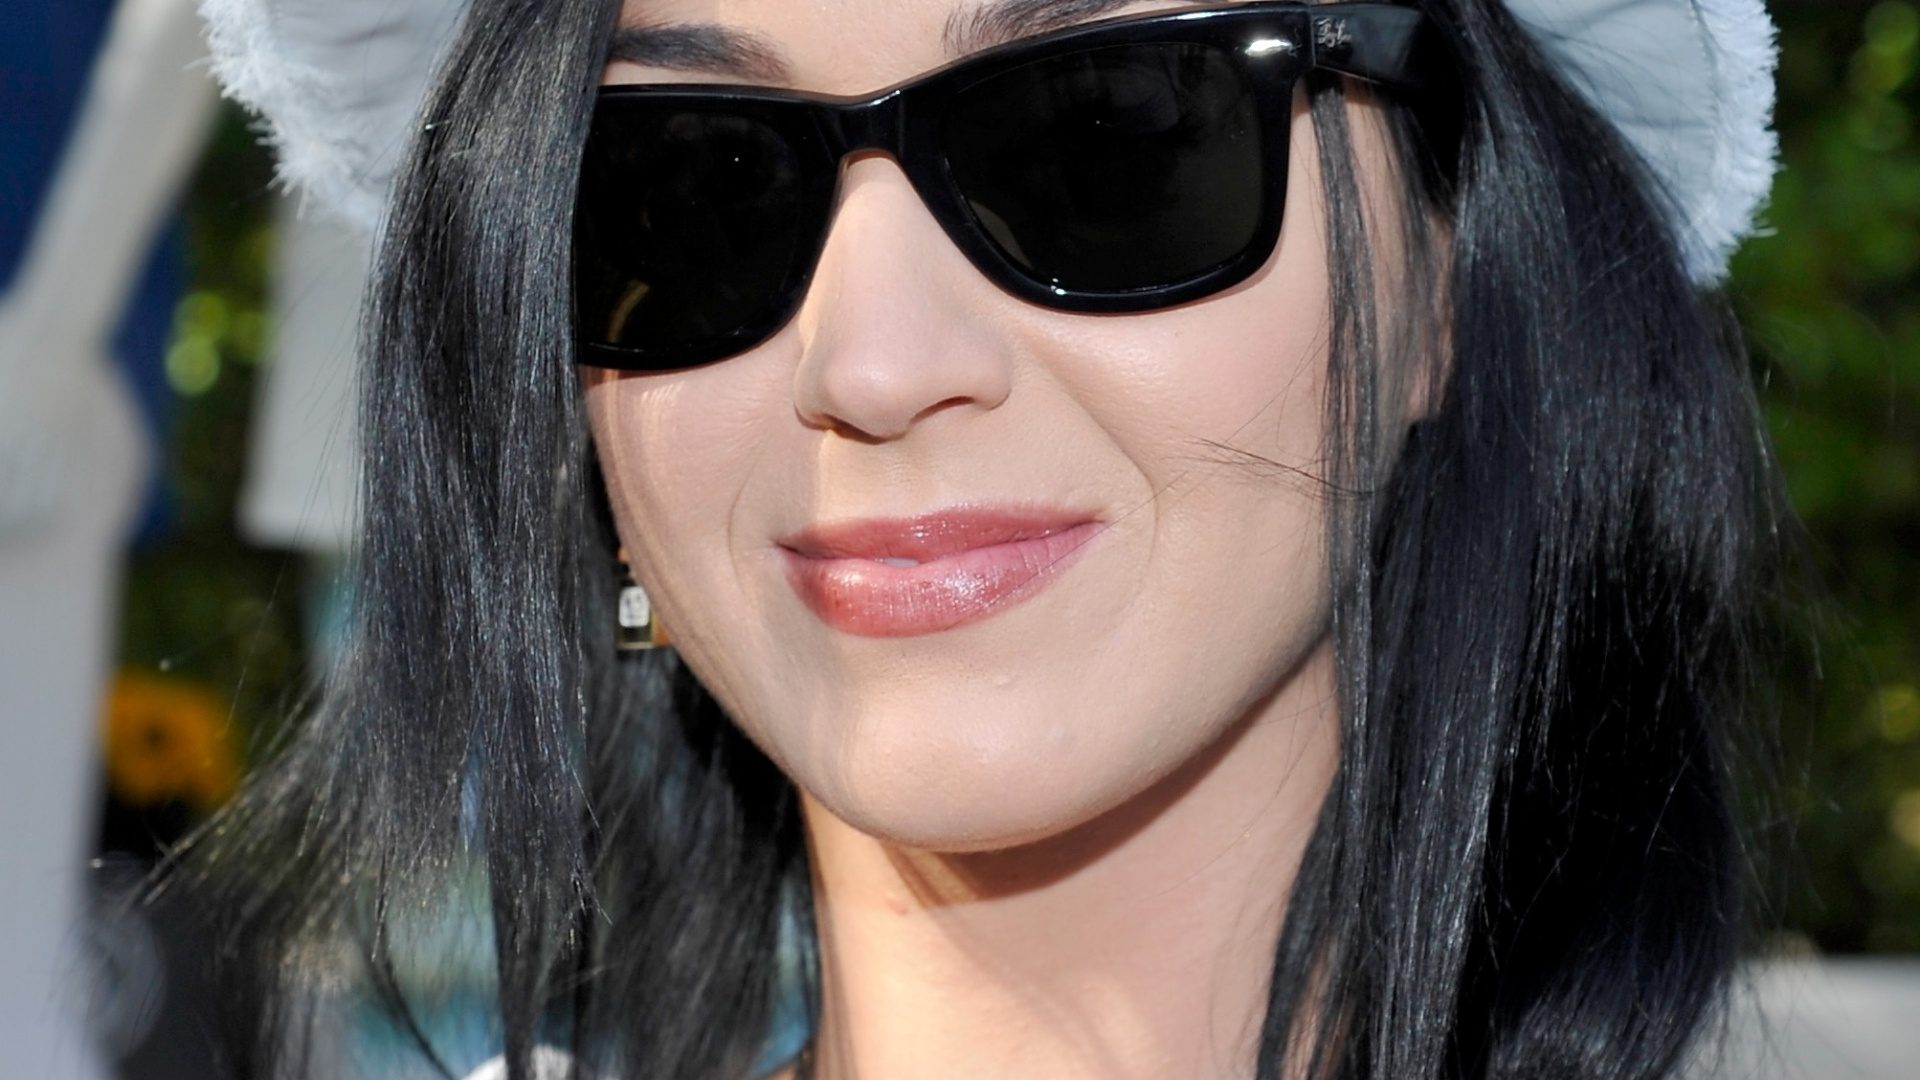 12.abr. 2013 - Katy Perry confere evento durante o Coachella Valley Music & Arts Festival no Empire Polo Field na cidade de Indio, na Califórnia